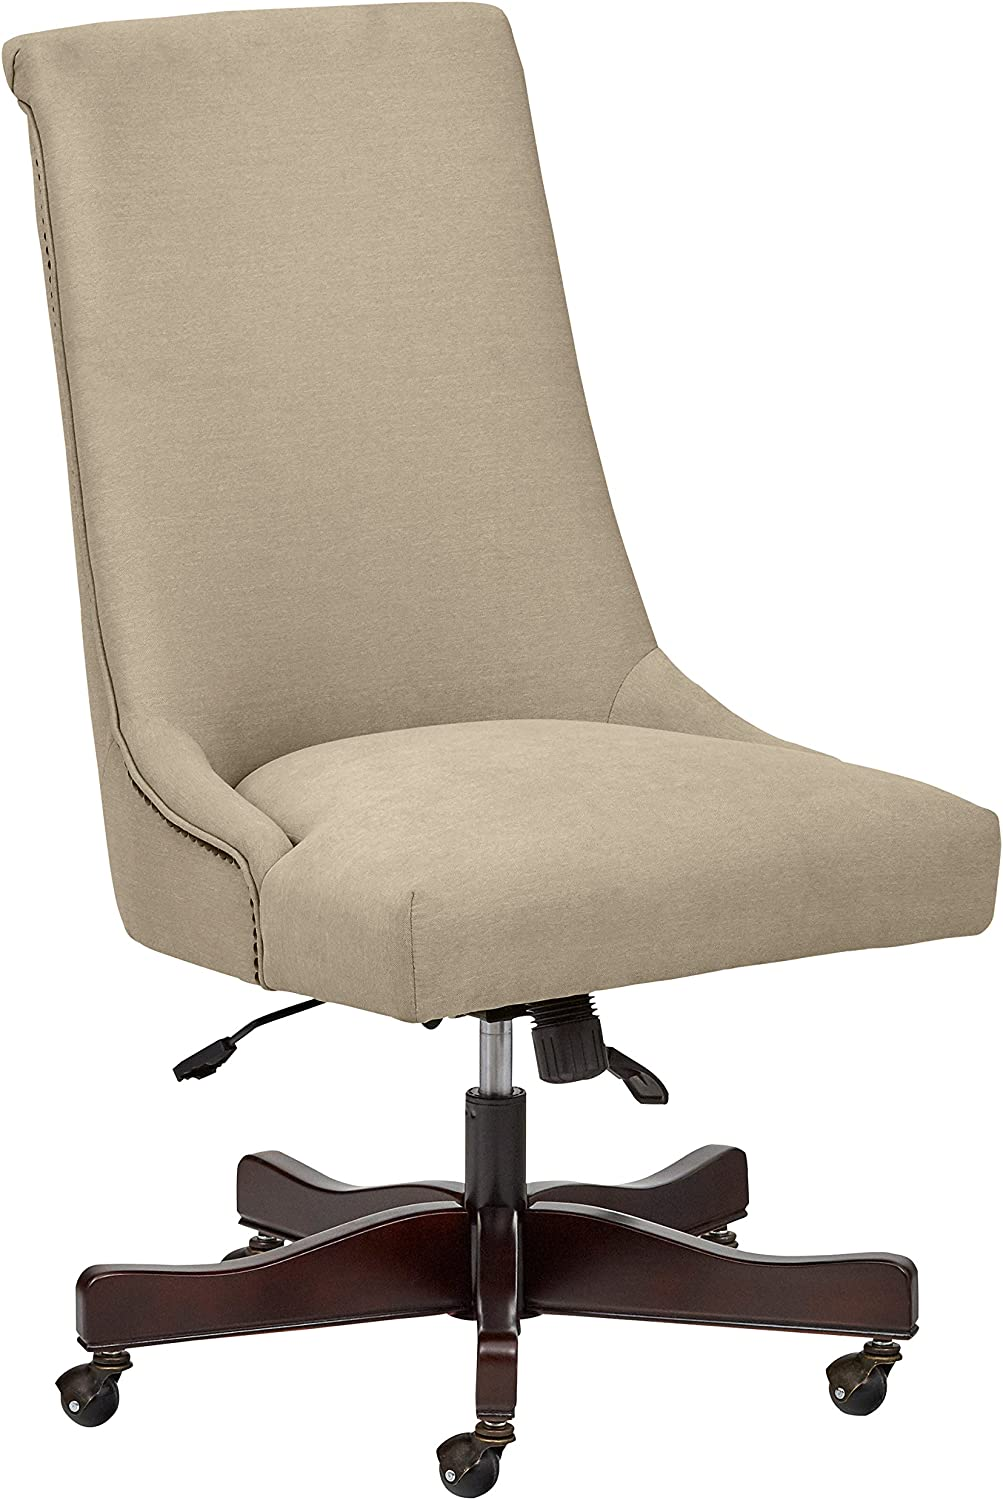 Stone Beam Nailhead Swivel Office Chair with Wheels, 28.4 W, Fawn